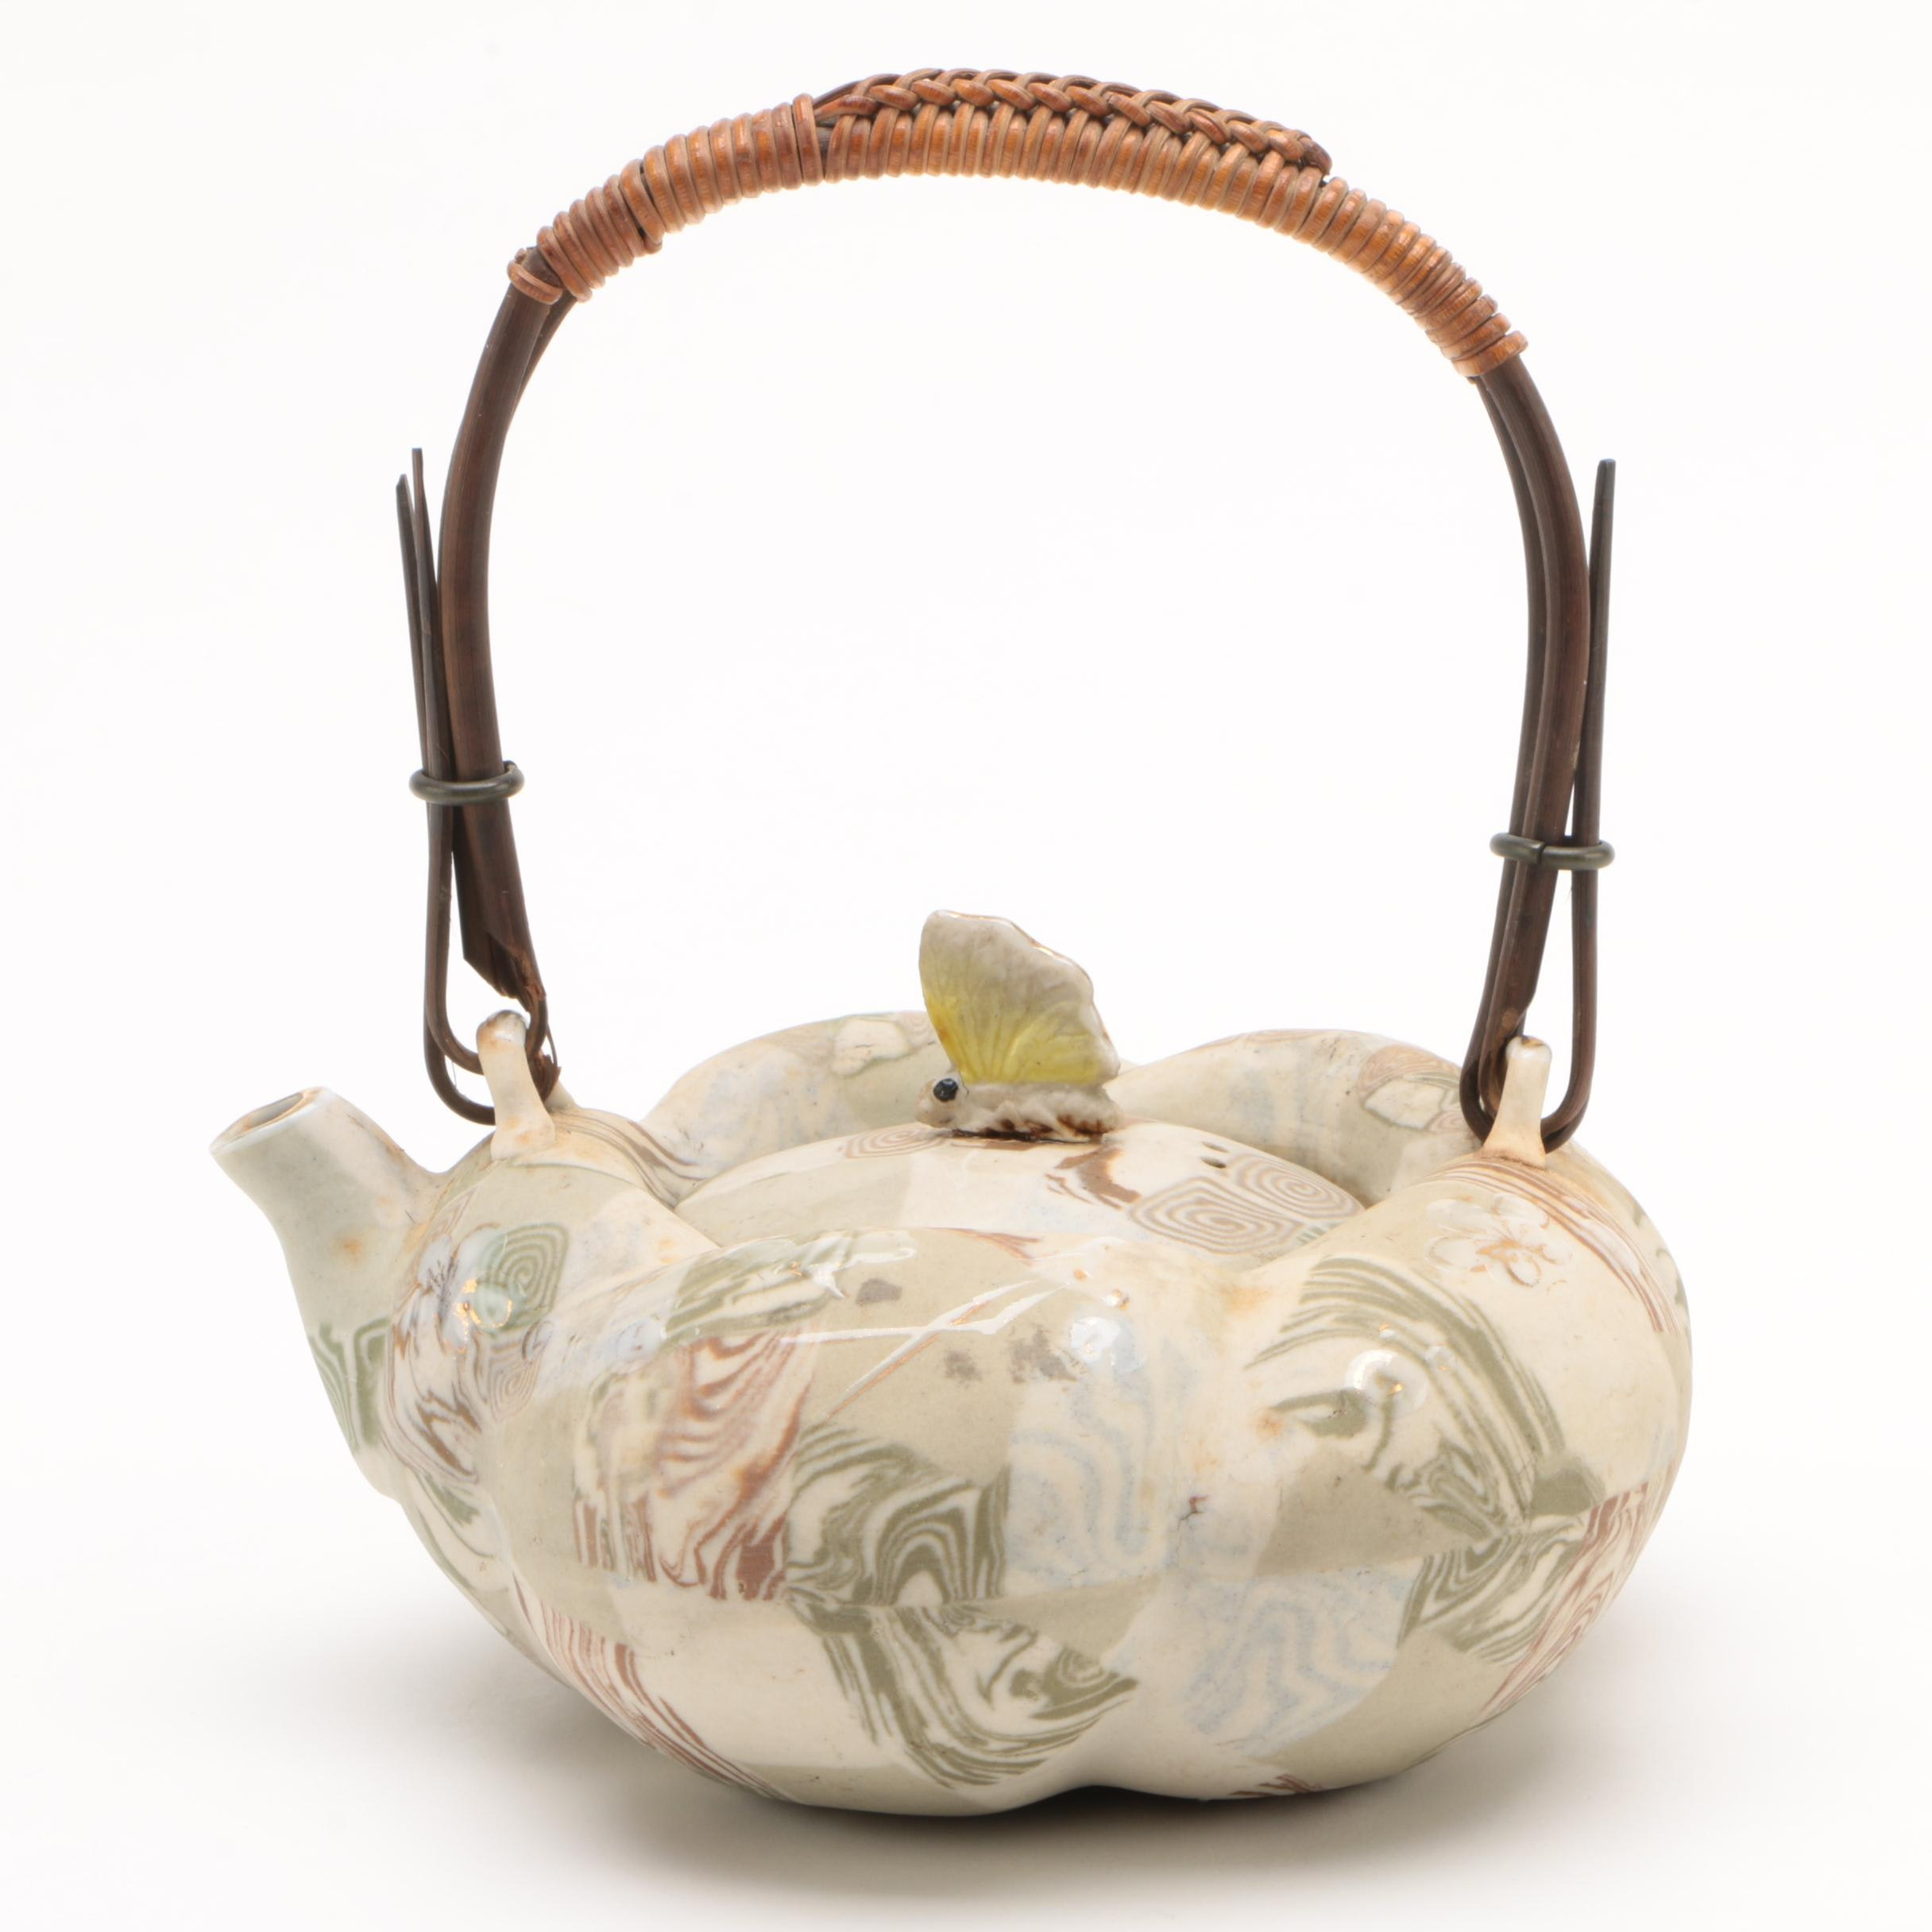 Japanese Banko Ware Pumpkin Form Teapot with Butterfly Finial, 1910s